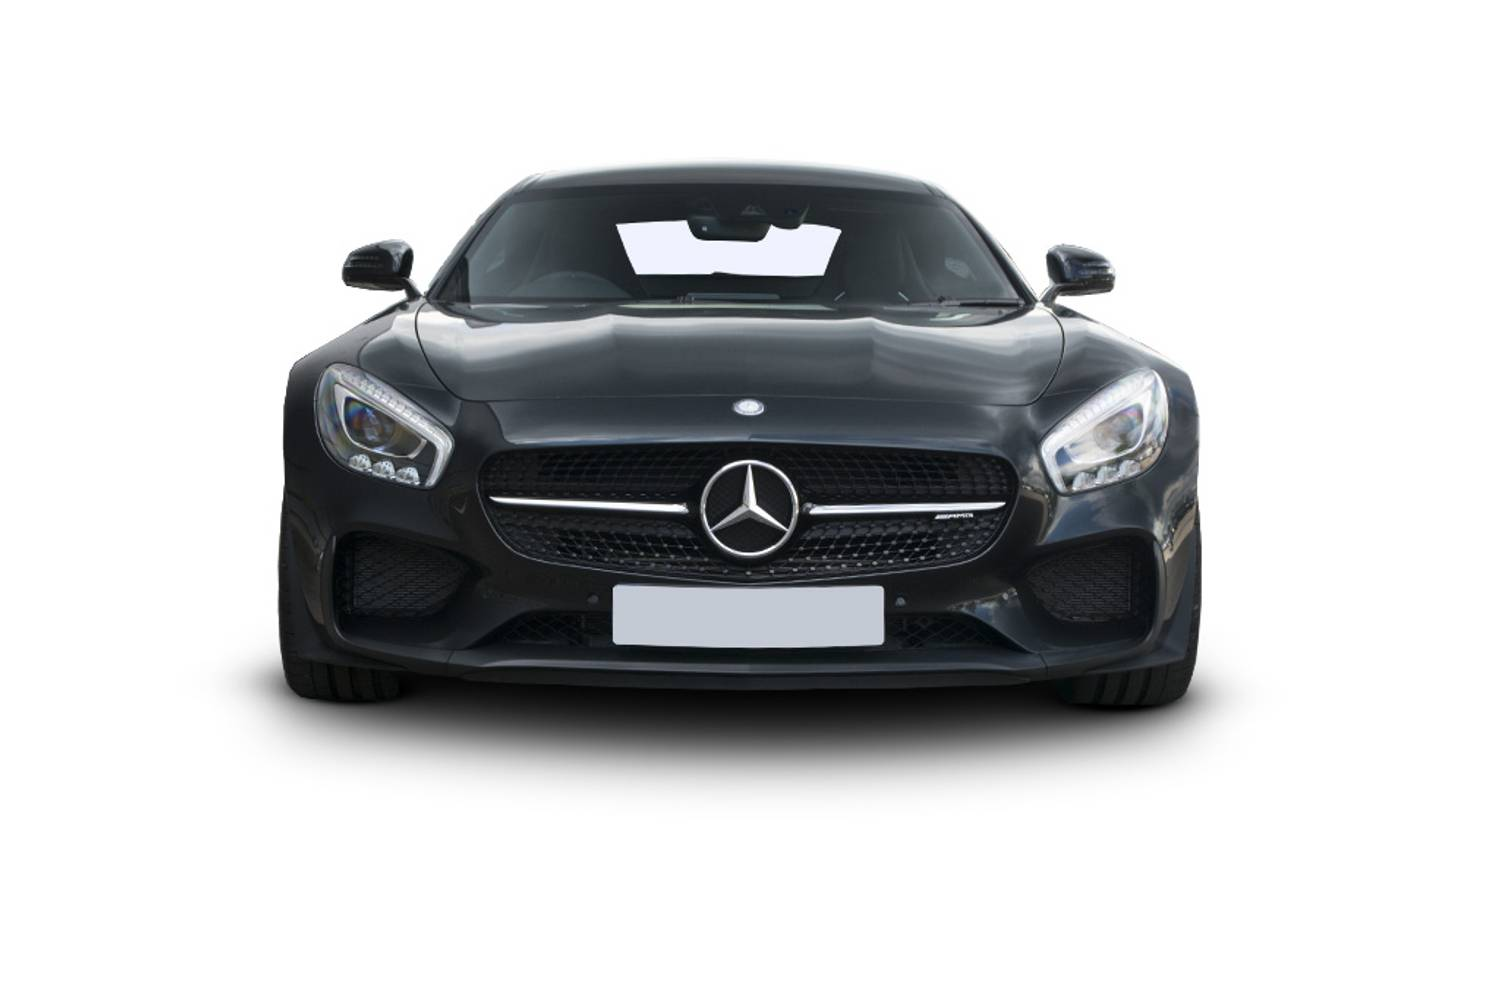 new mercedes benz amg gt coupe gt r premium 2 door auto 2017 for sale. Black Bedroom Furniture Sets. Home Design Ideas